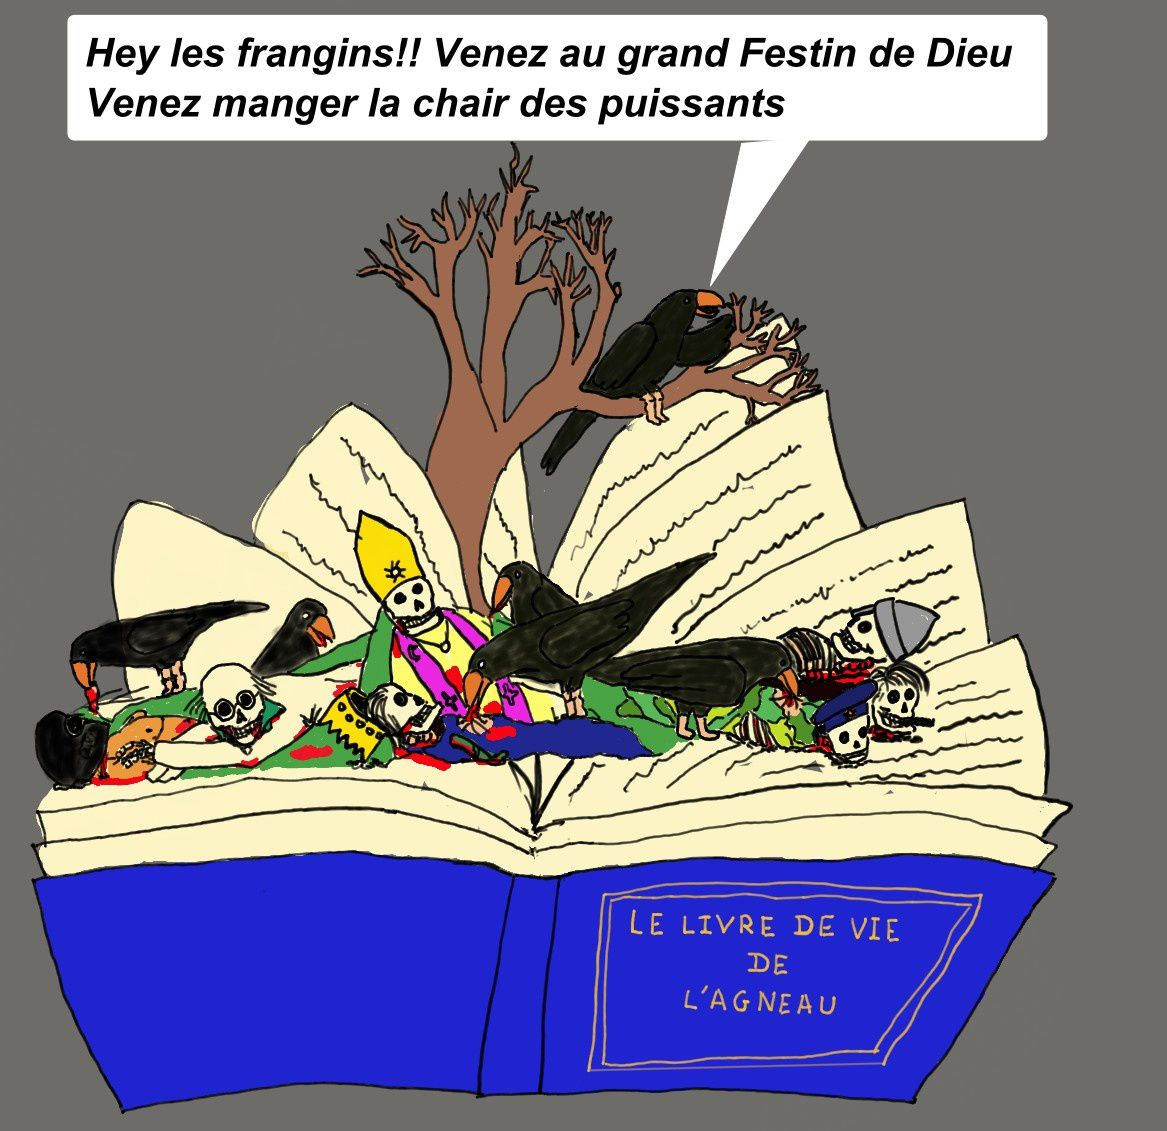 Symbole de la chair dans la bible